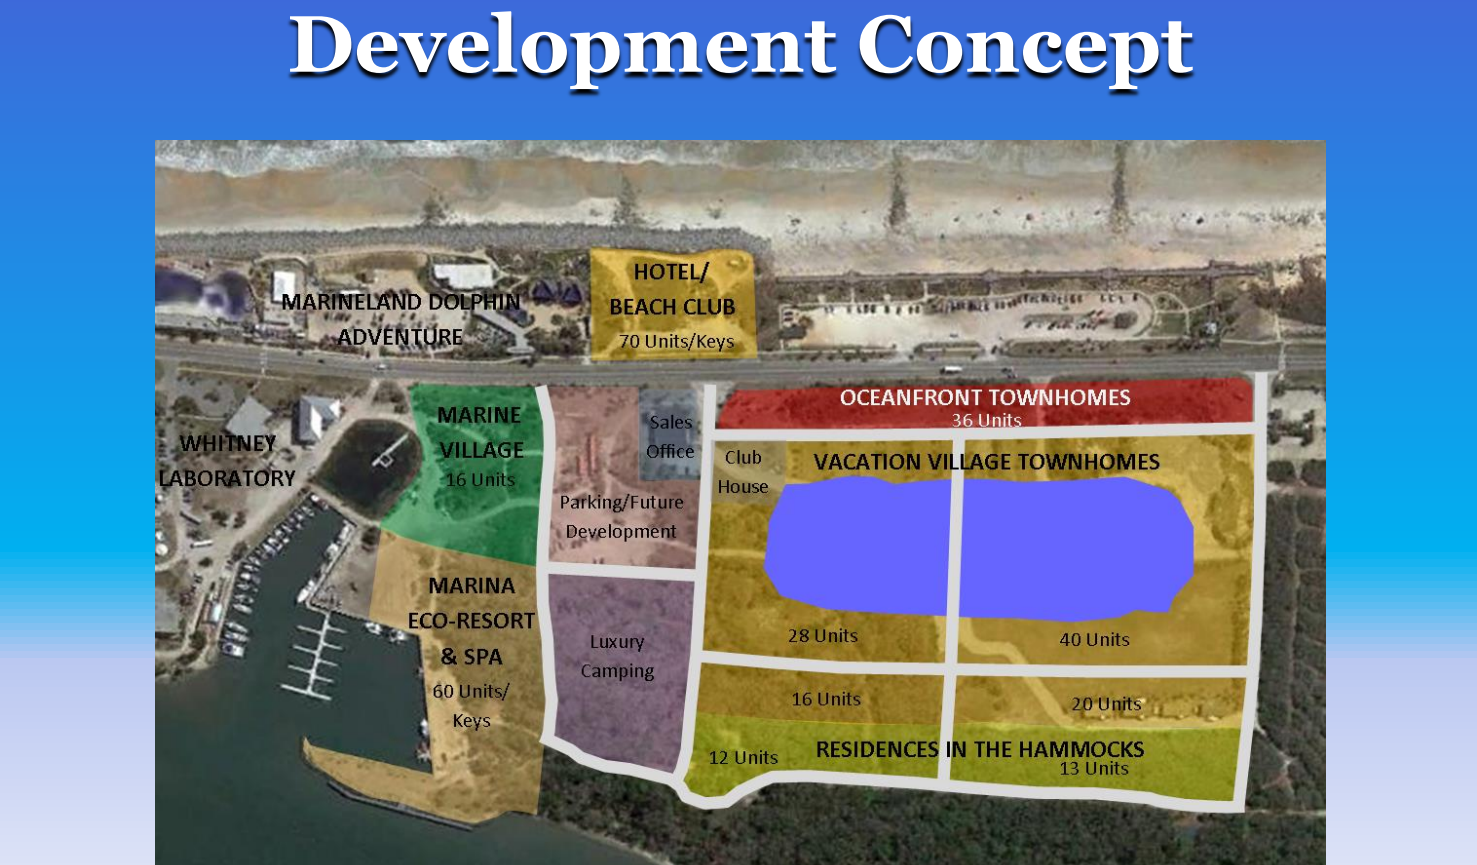 Marineland, Florida development concept